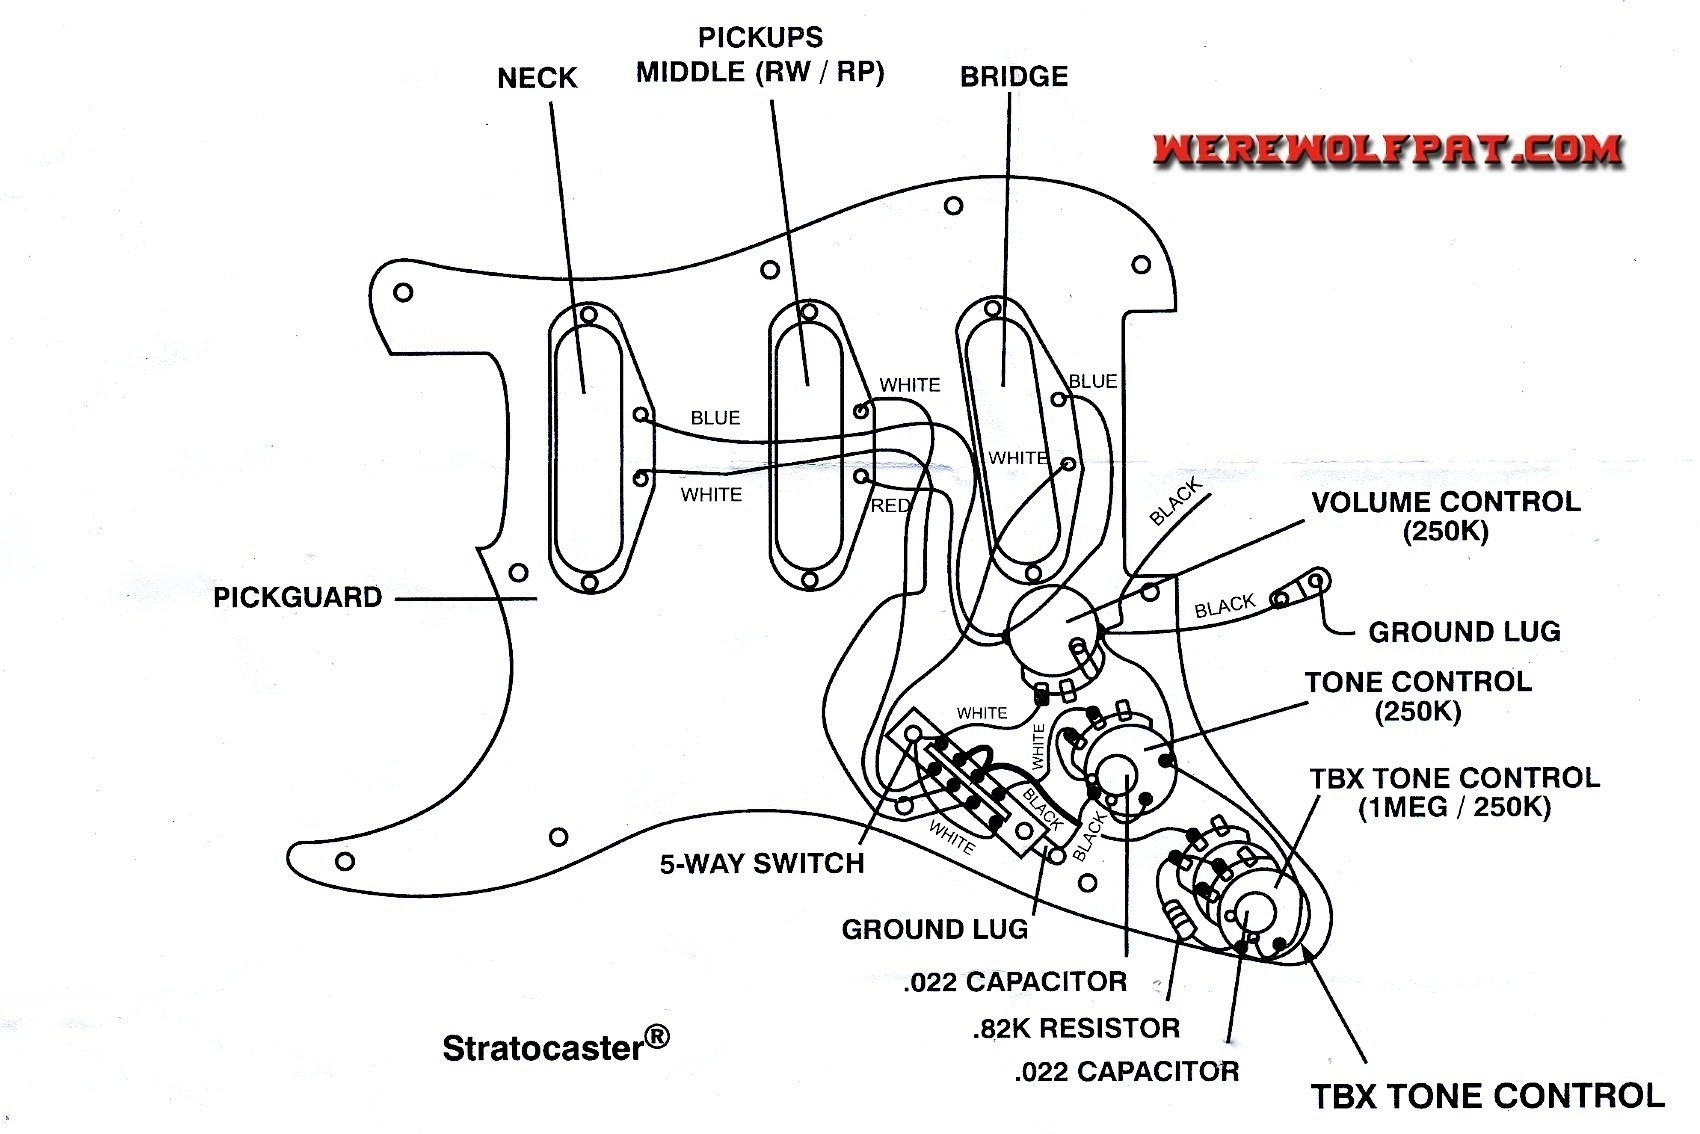 fender 5 way switch diagram